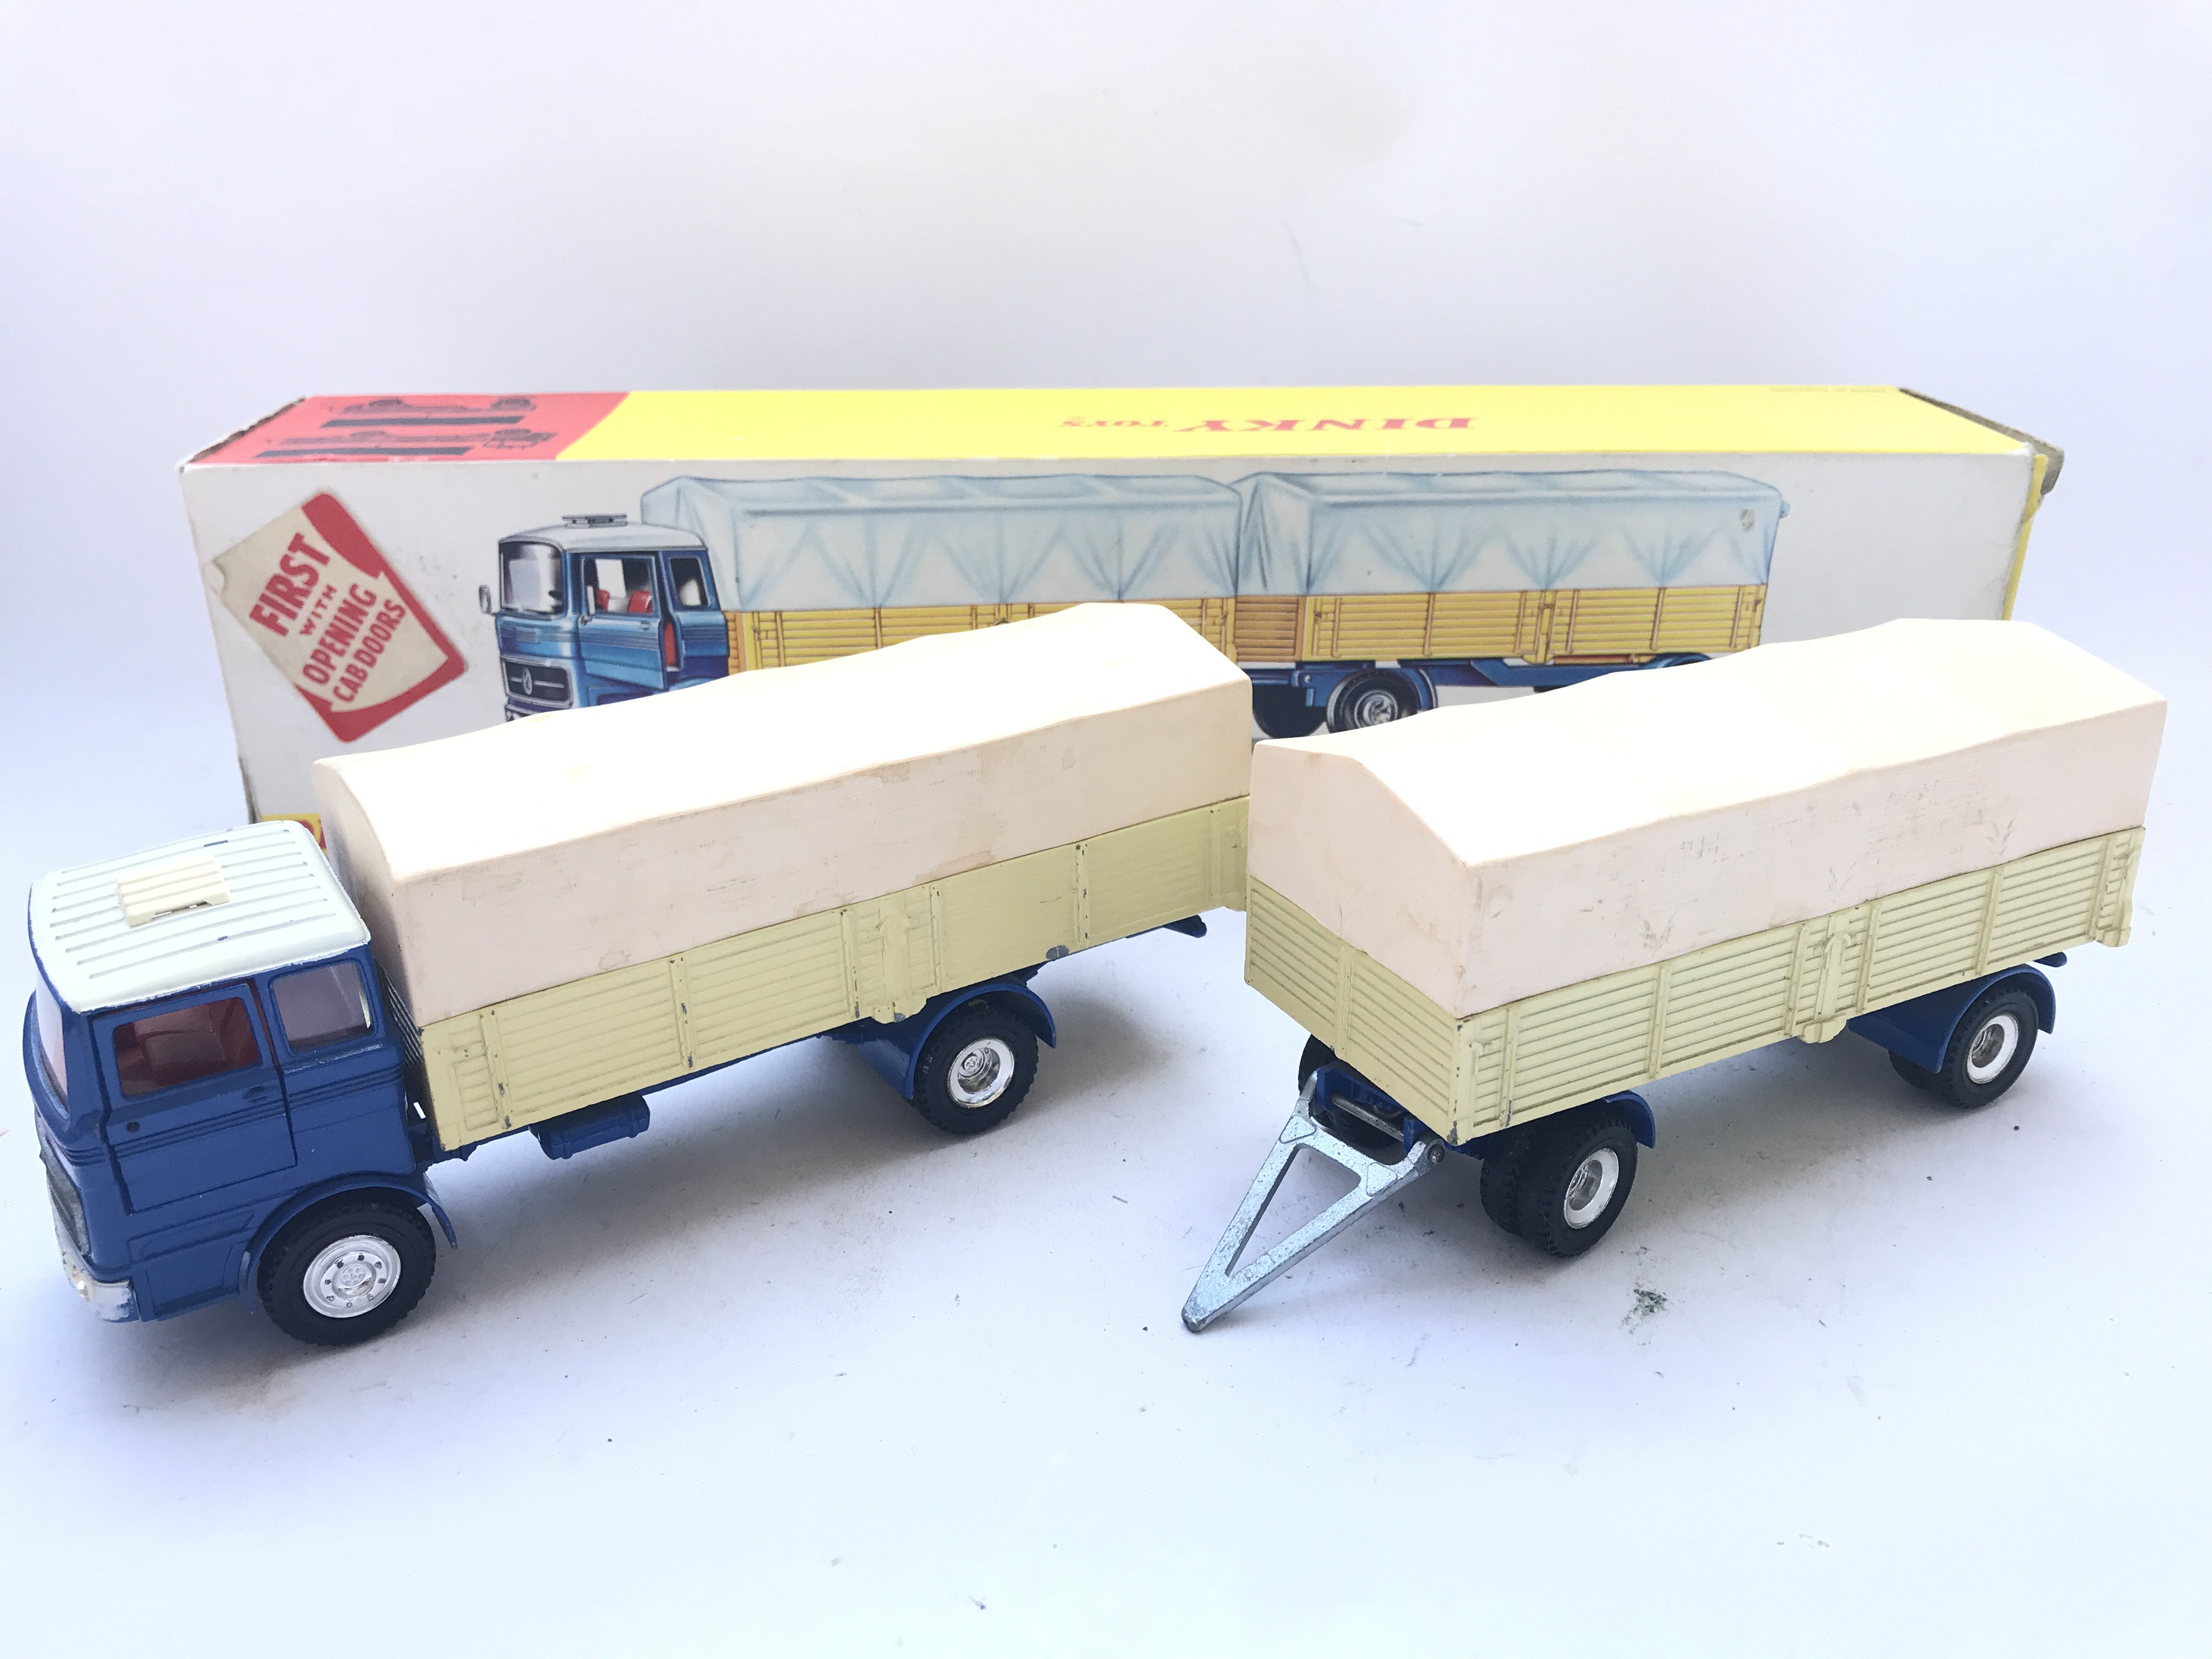 A Boxed Dinky Toys Mercedes-Benz Truck and Trailer - Image 2 of 2